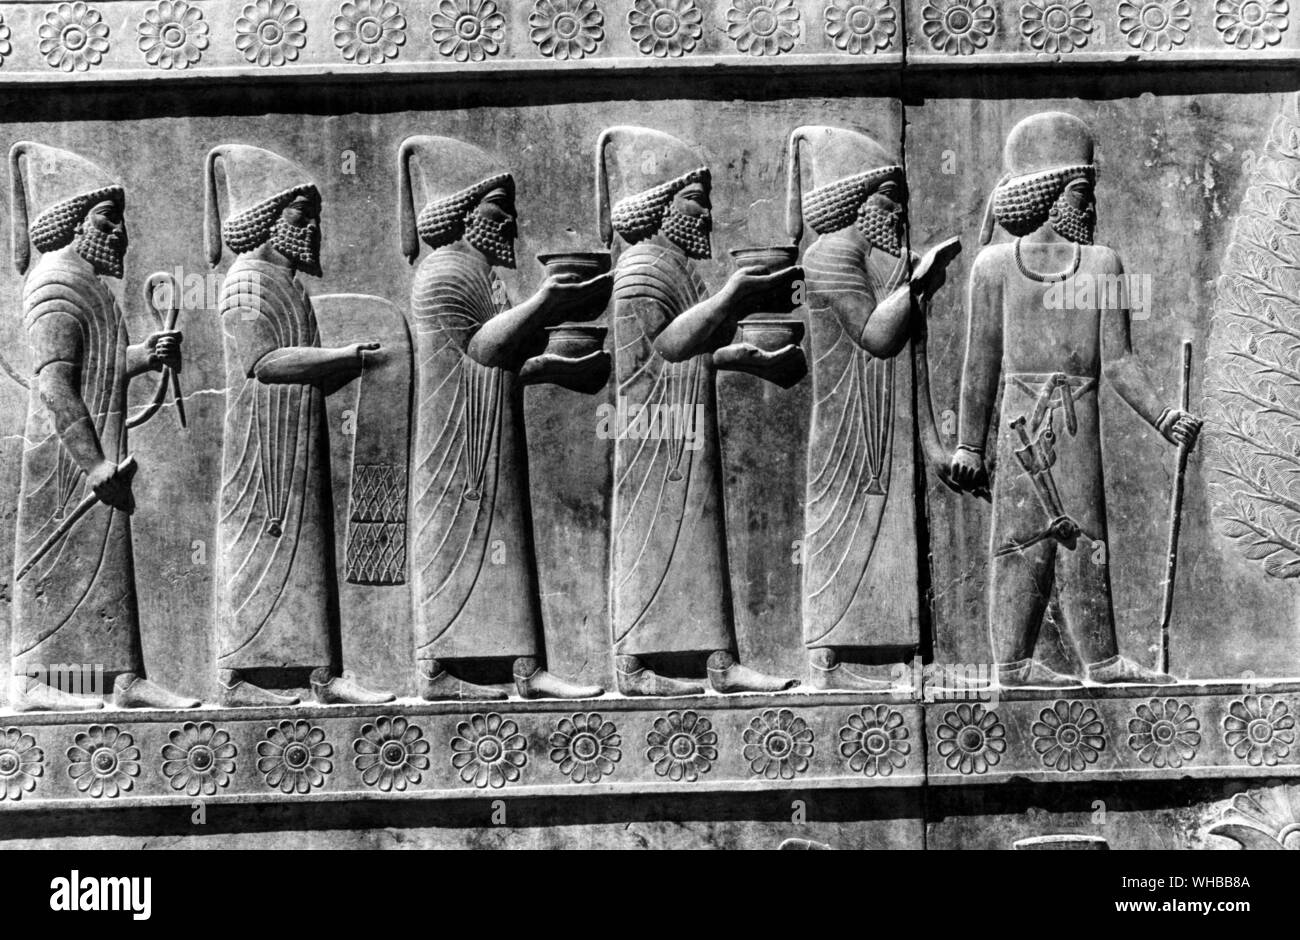 Apadana Palace Persepolis Persian Relief In Sculpture Of Officials Carrying Gifts Iran Stock Photo Alamy